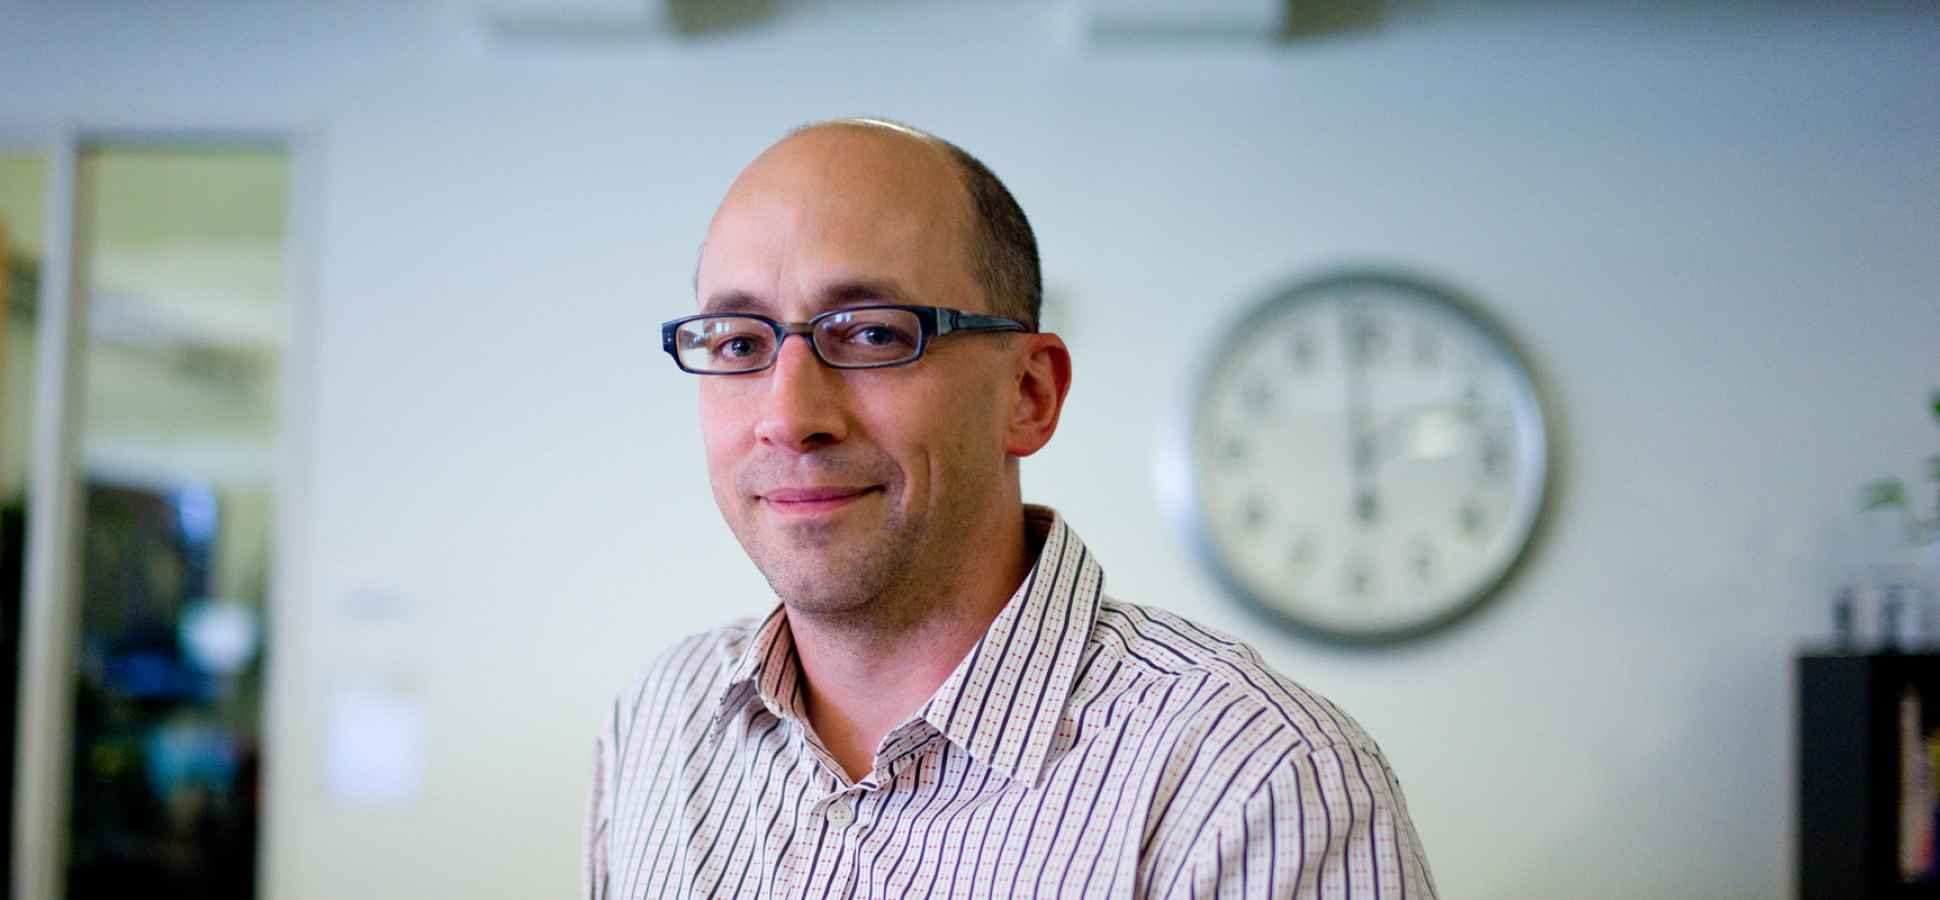 Twitter CEO Dick Costolo: What I've Learned